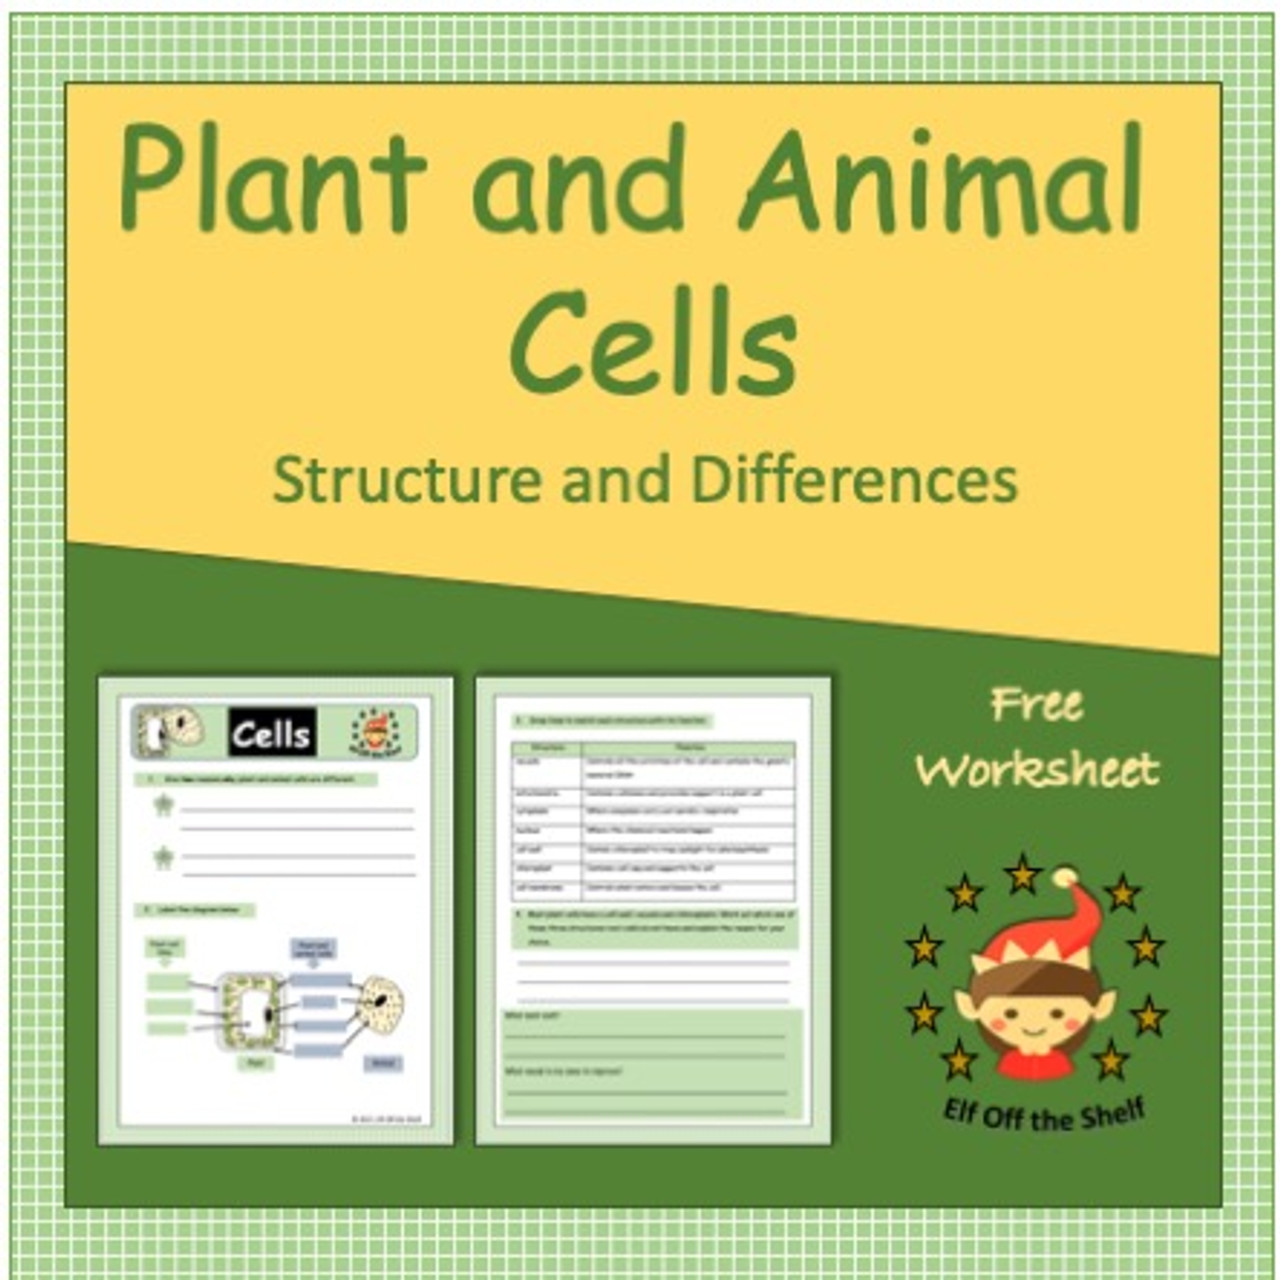 Plant and Animal Cells - Structure and Differences - Free Worksheet - Amped  Up Learning [ 1280 x 1280 Pixel ]